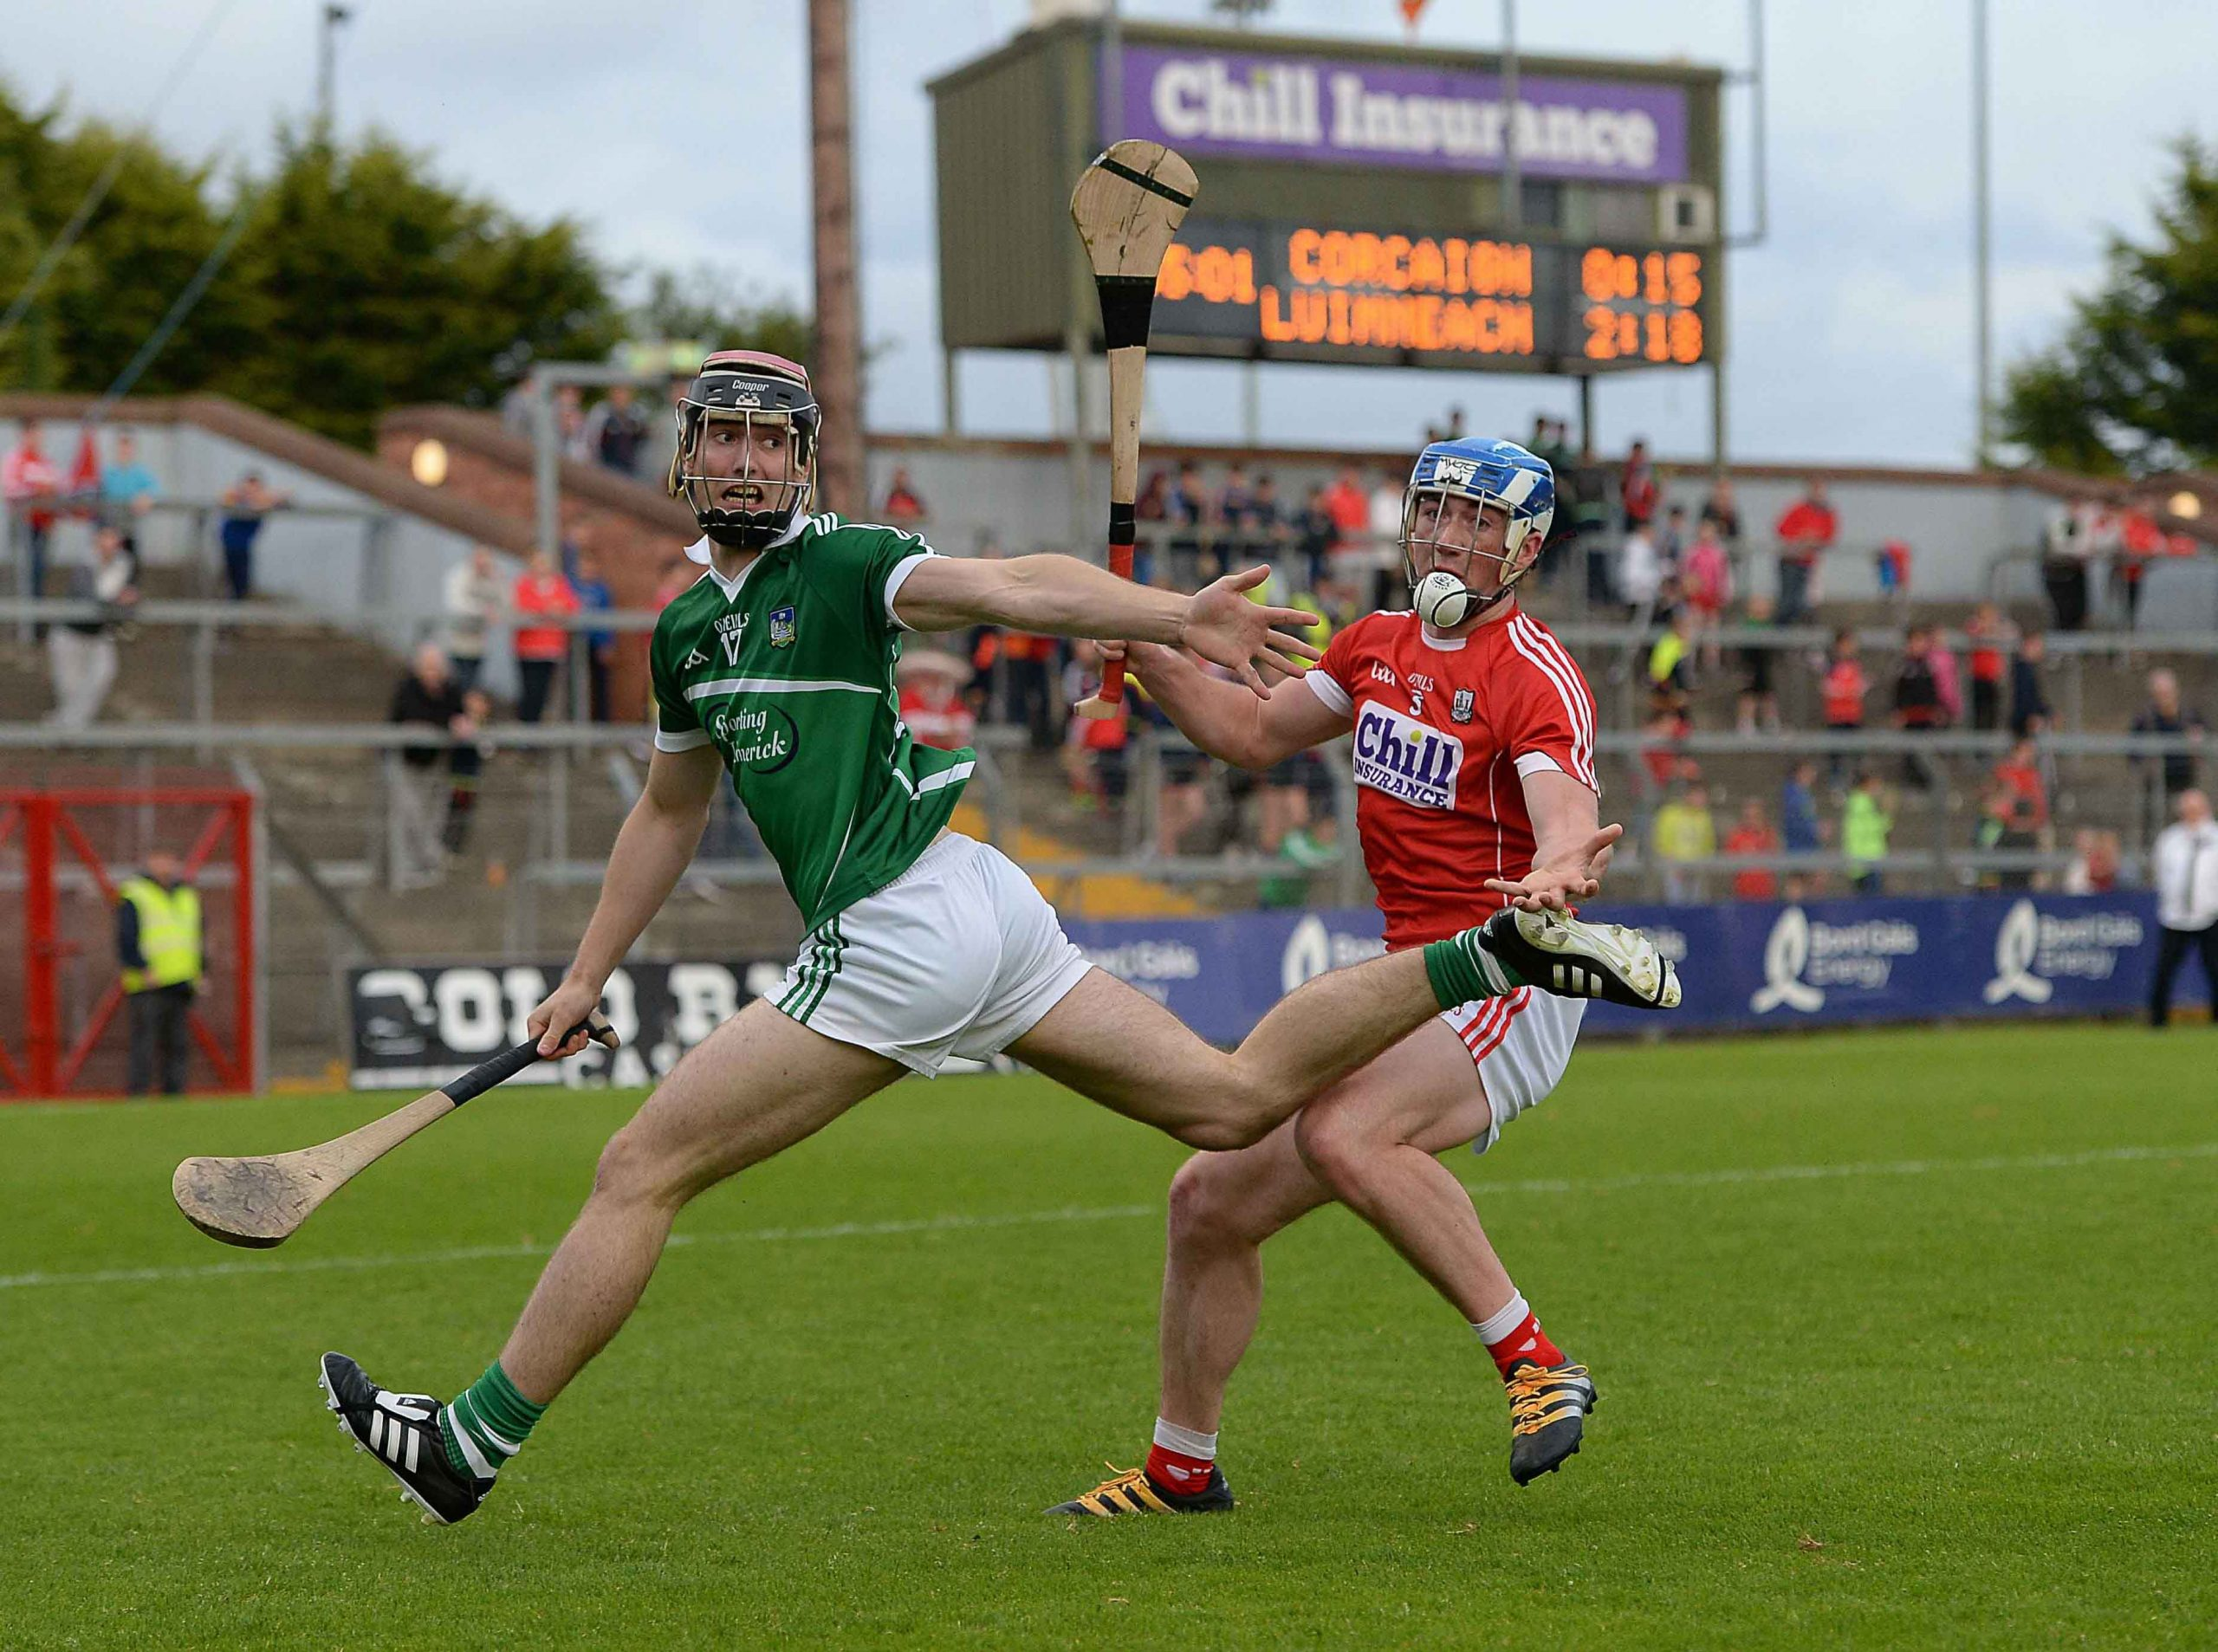 Munster derby in second All-Ireland SHC Semi-Final as Cork and Limerick seek Final spot